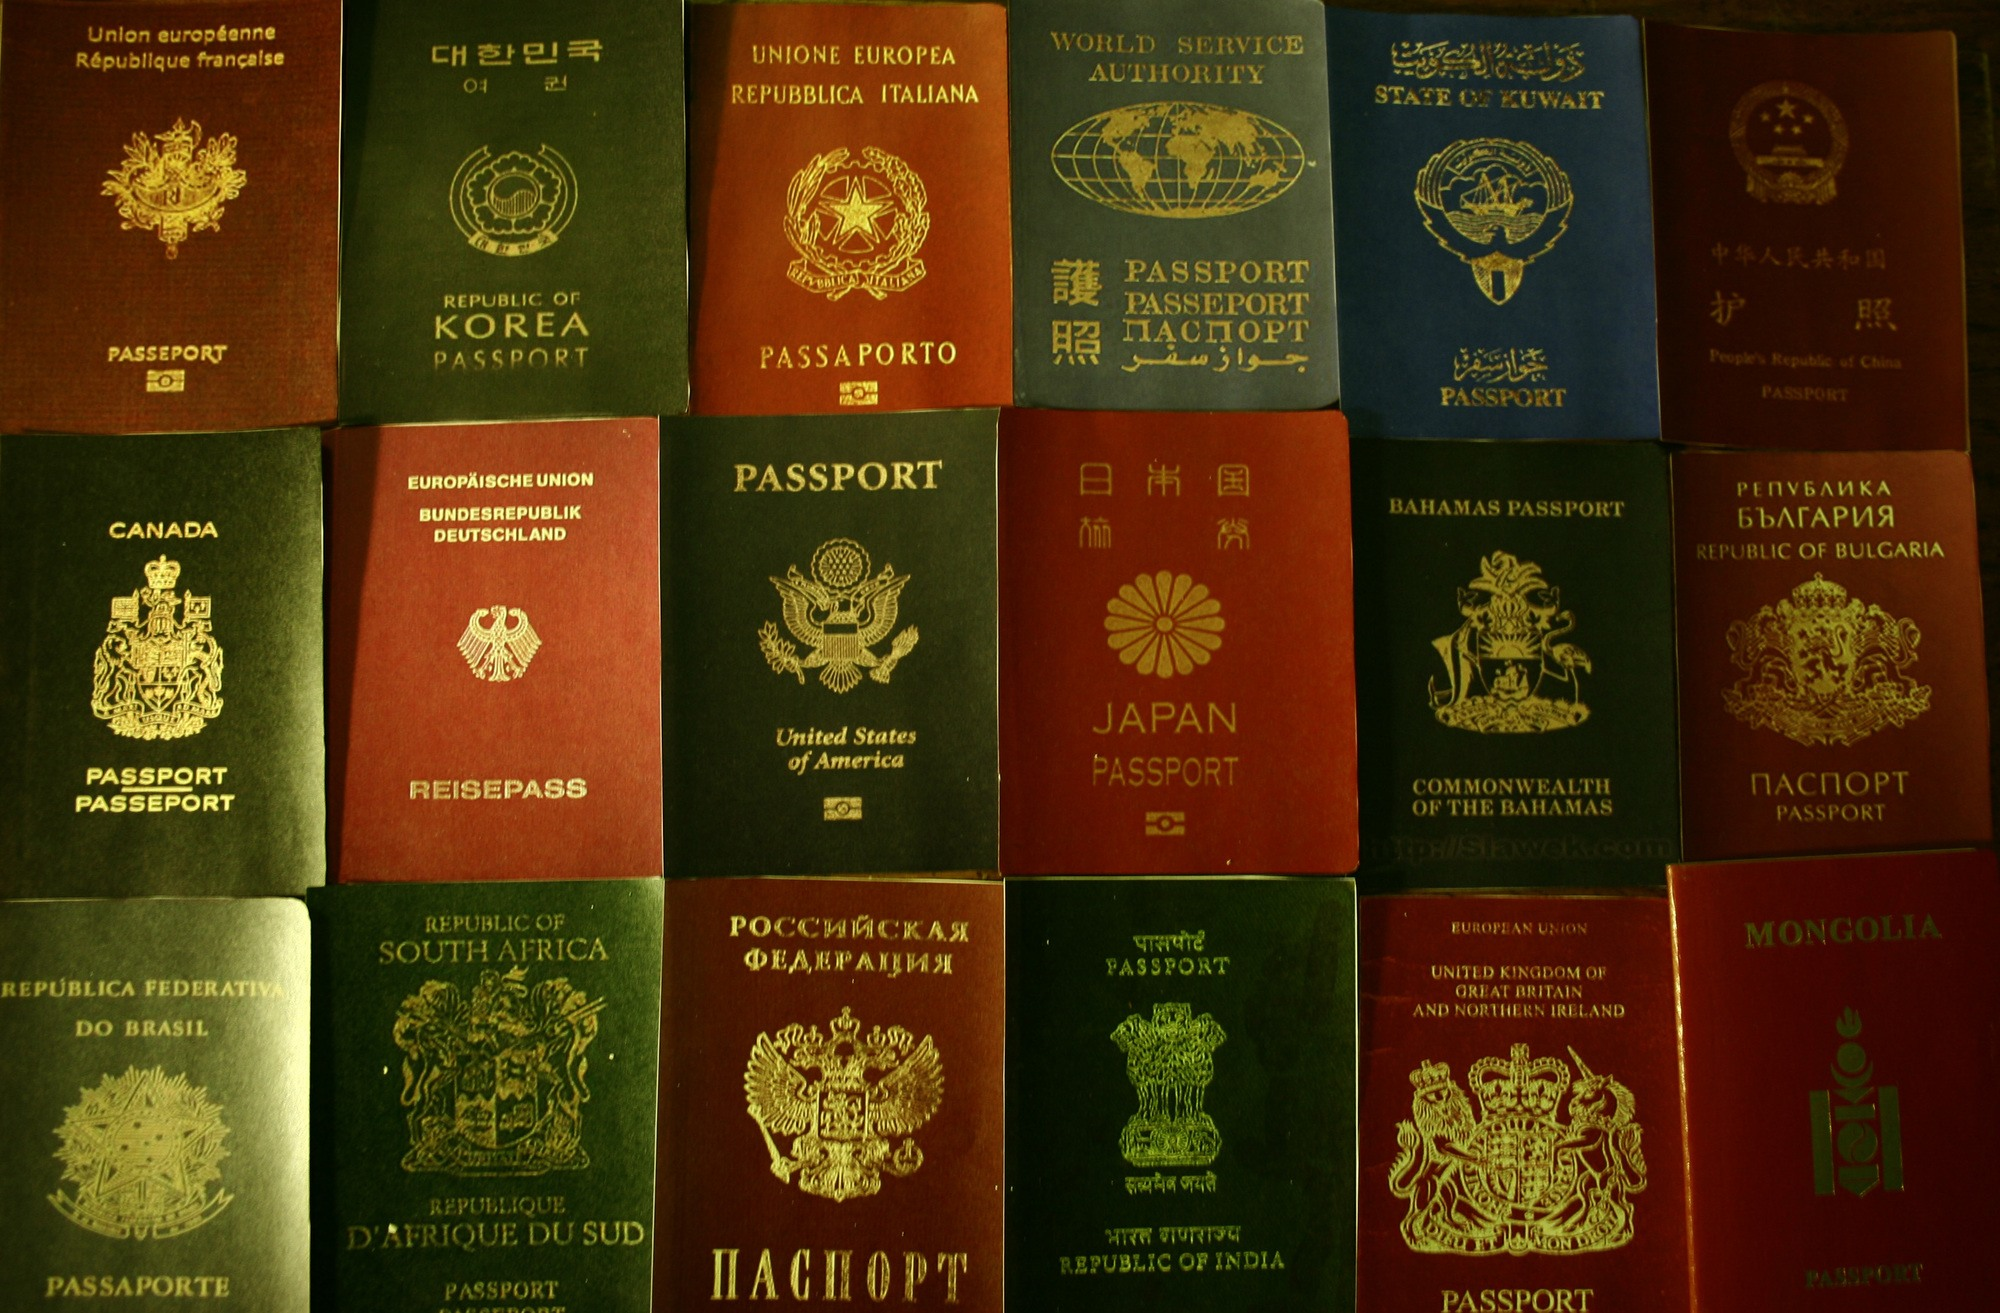 What should a sensible and fair immigration policy look like?